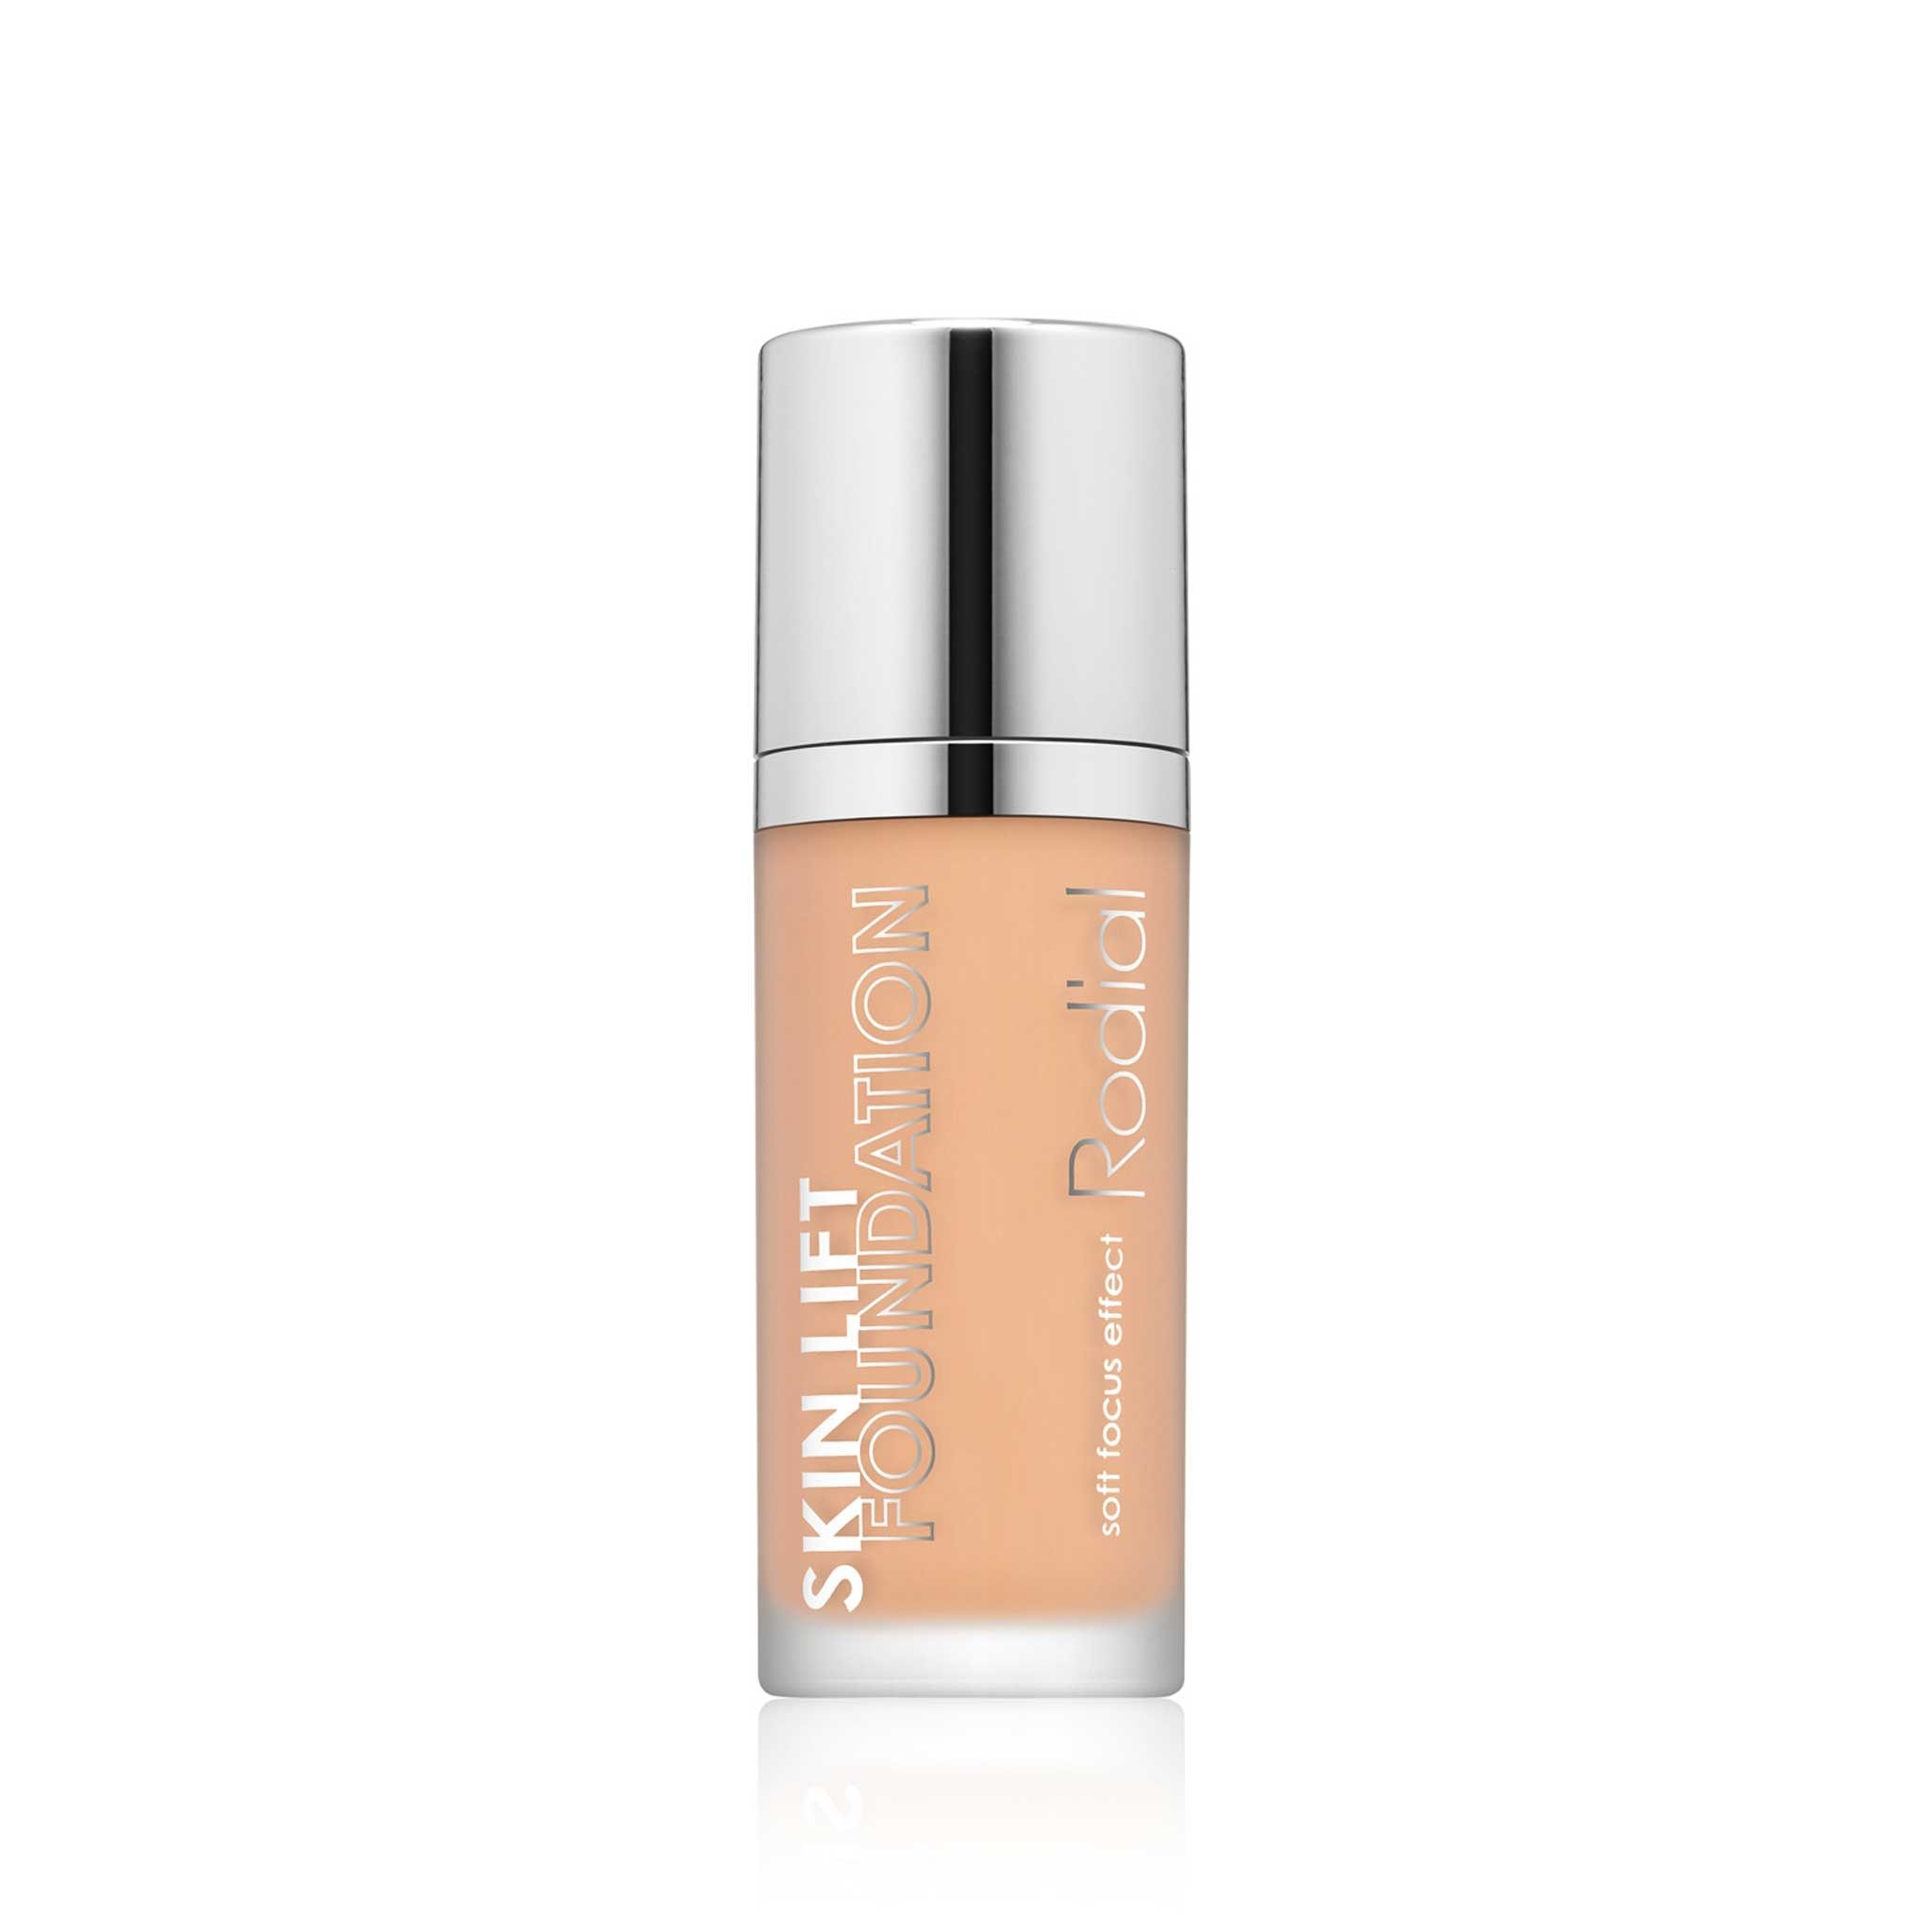 Skin Lift Foundation